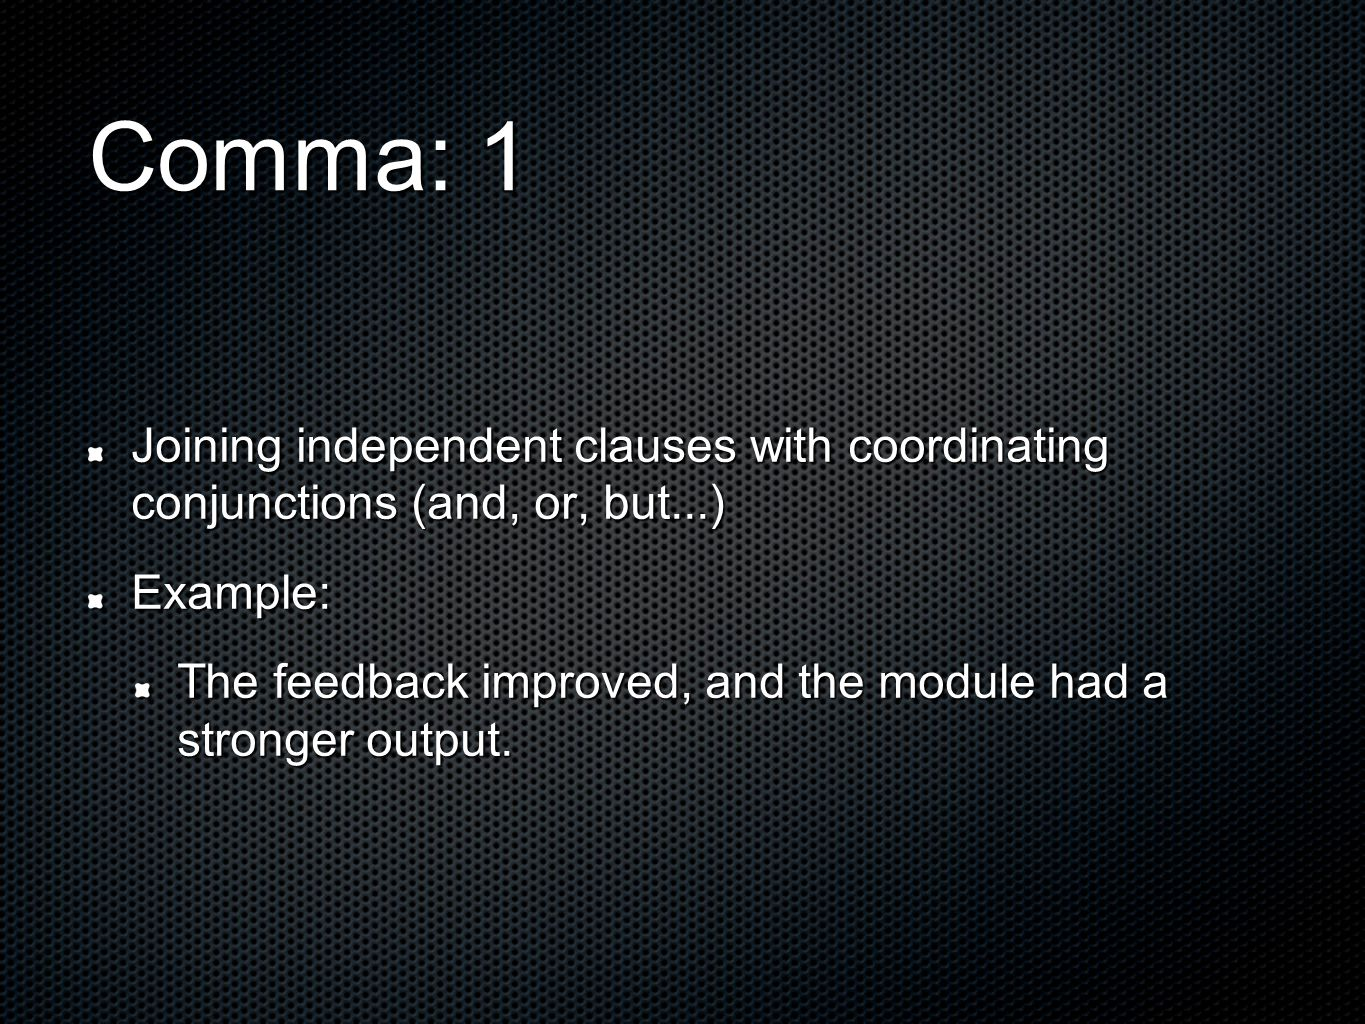 Comma: 1 Joining independent clauses with coordinating conjunctions (and, or, but...) Example: The feedback improved, and the module had a stronger output.